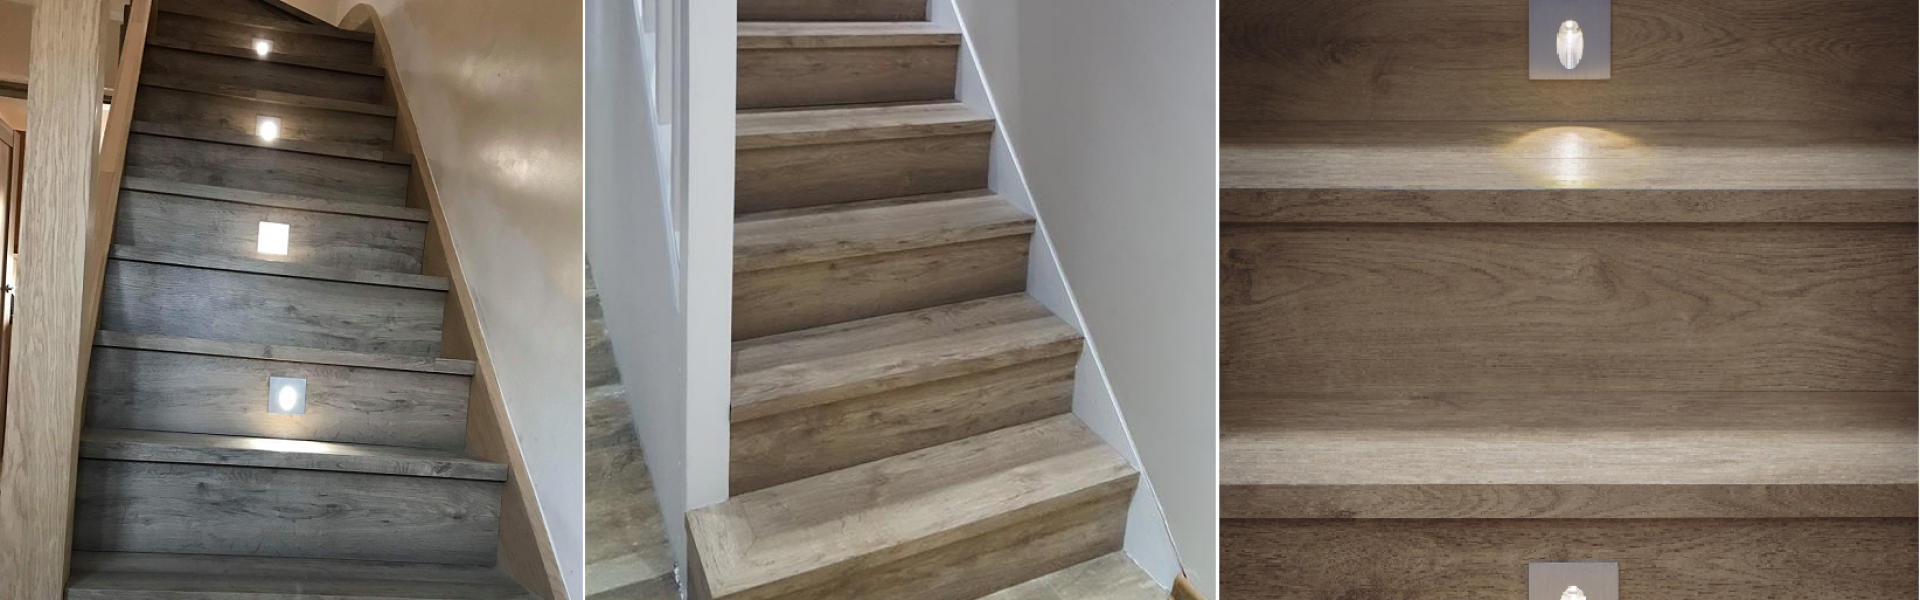 Laminate Flooring On Stairs Hygenic + Pet Friendly